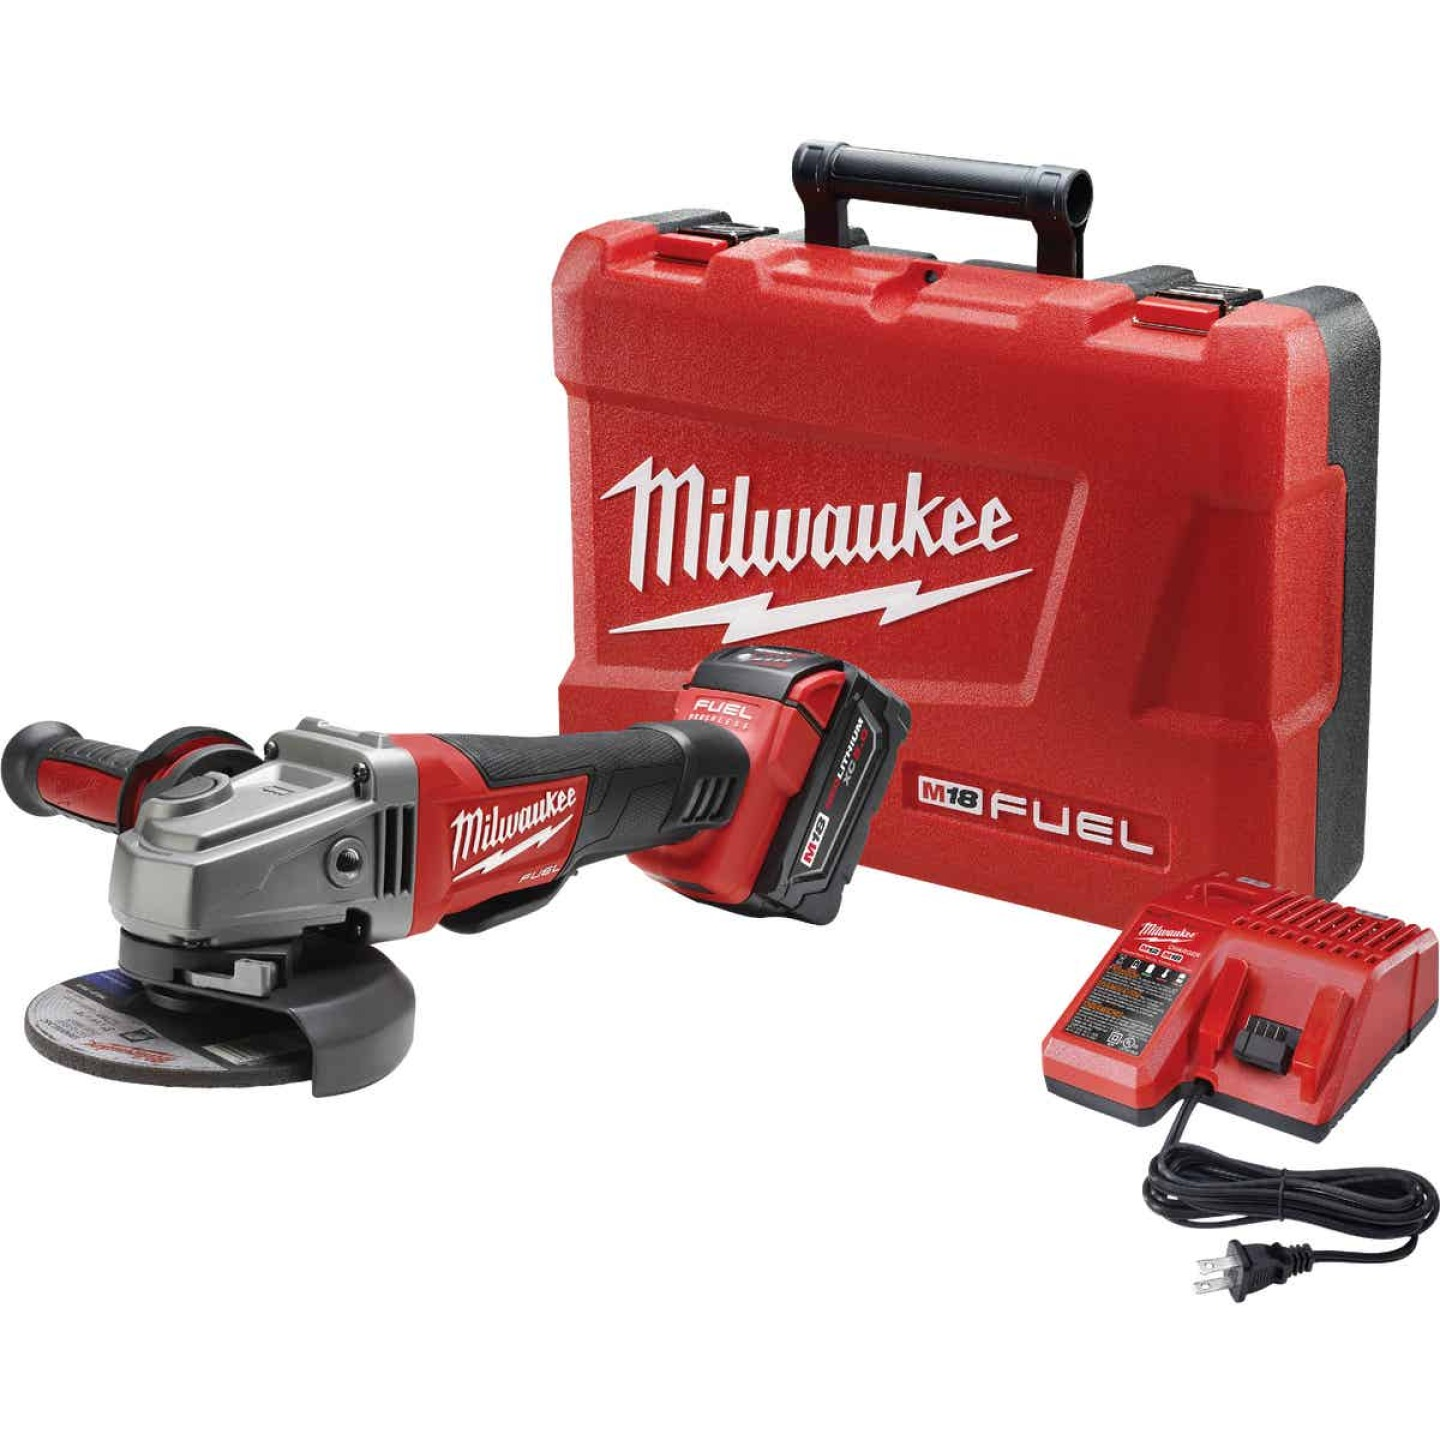 Milwaukee M18 FUEL 18-Volt Lithium-Ion 4-1/2 In. - 5 In. Brushless Cordless Angle Grinder Kit Image 1